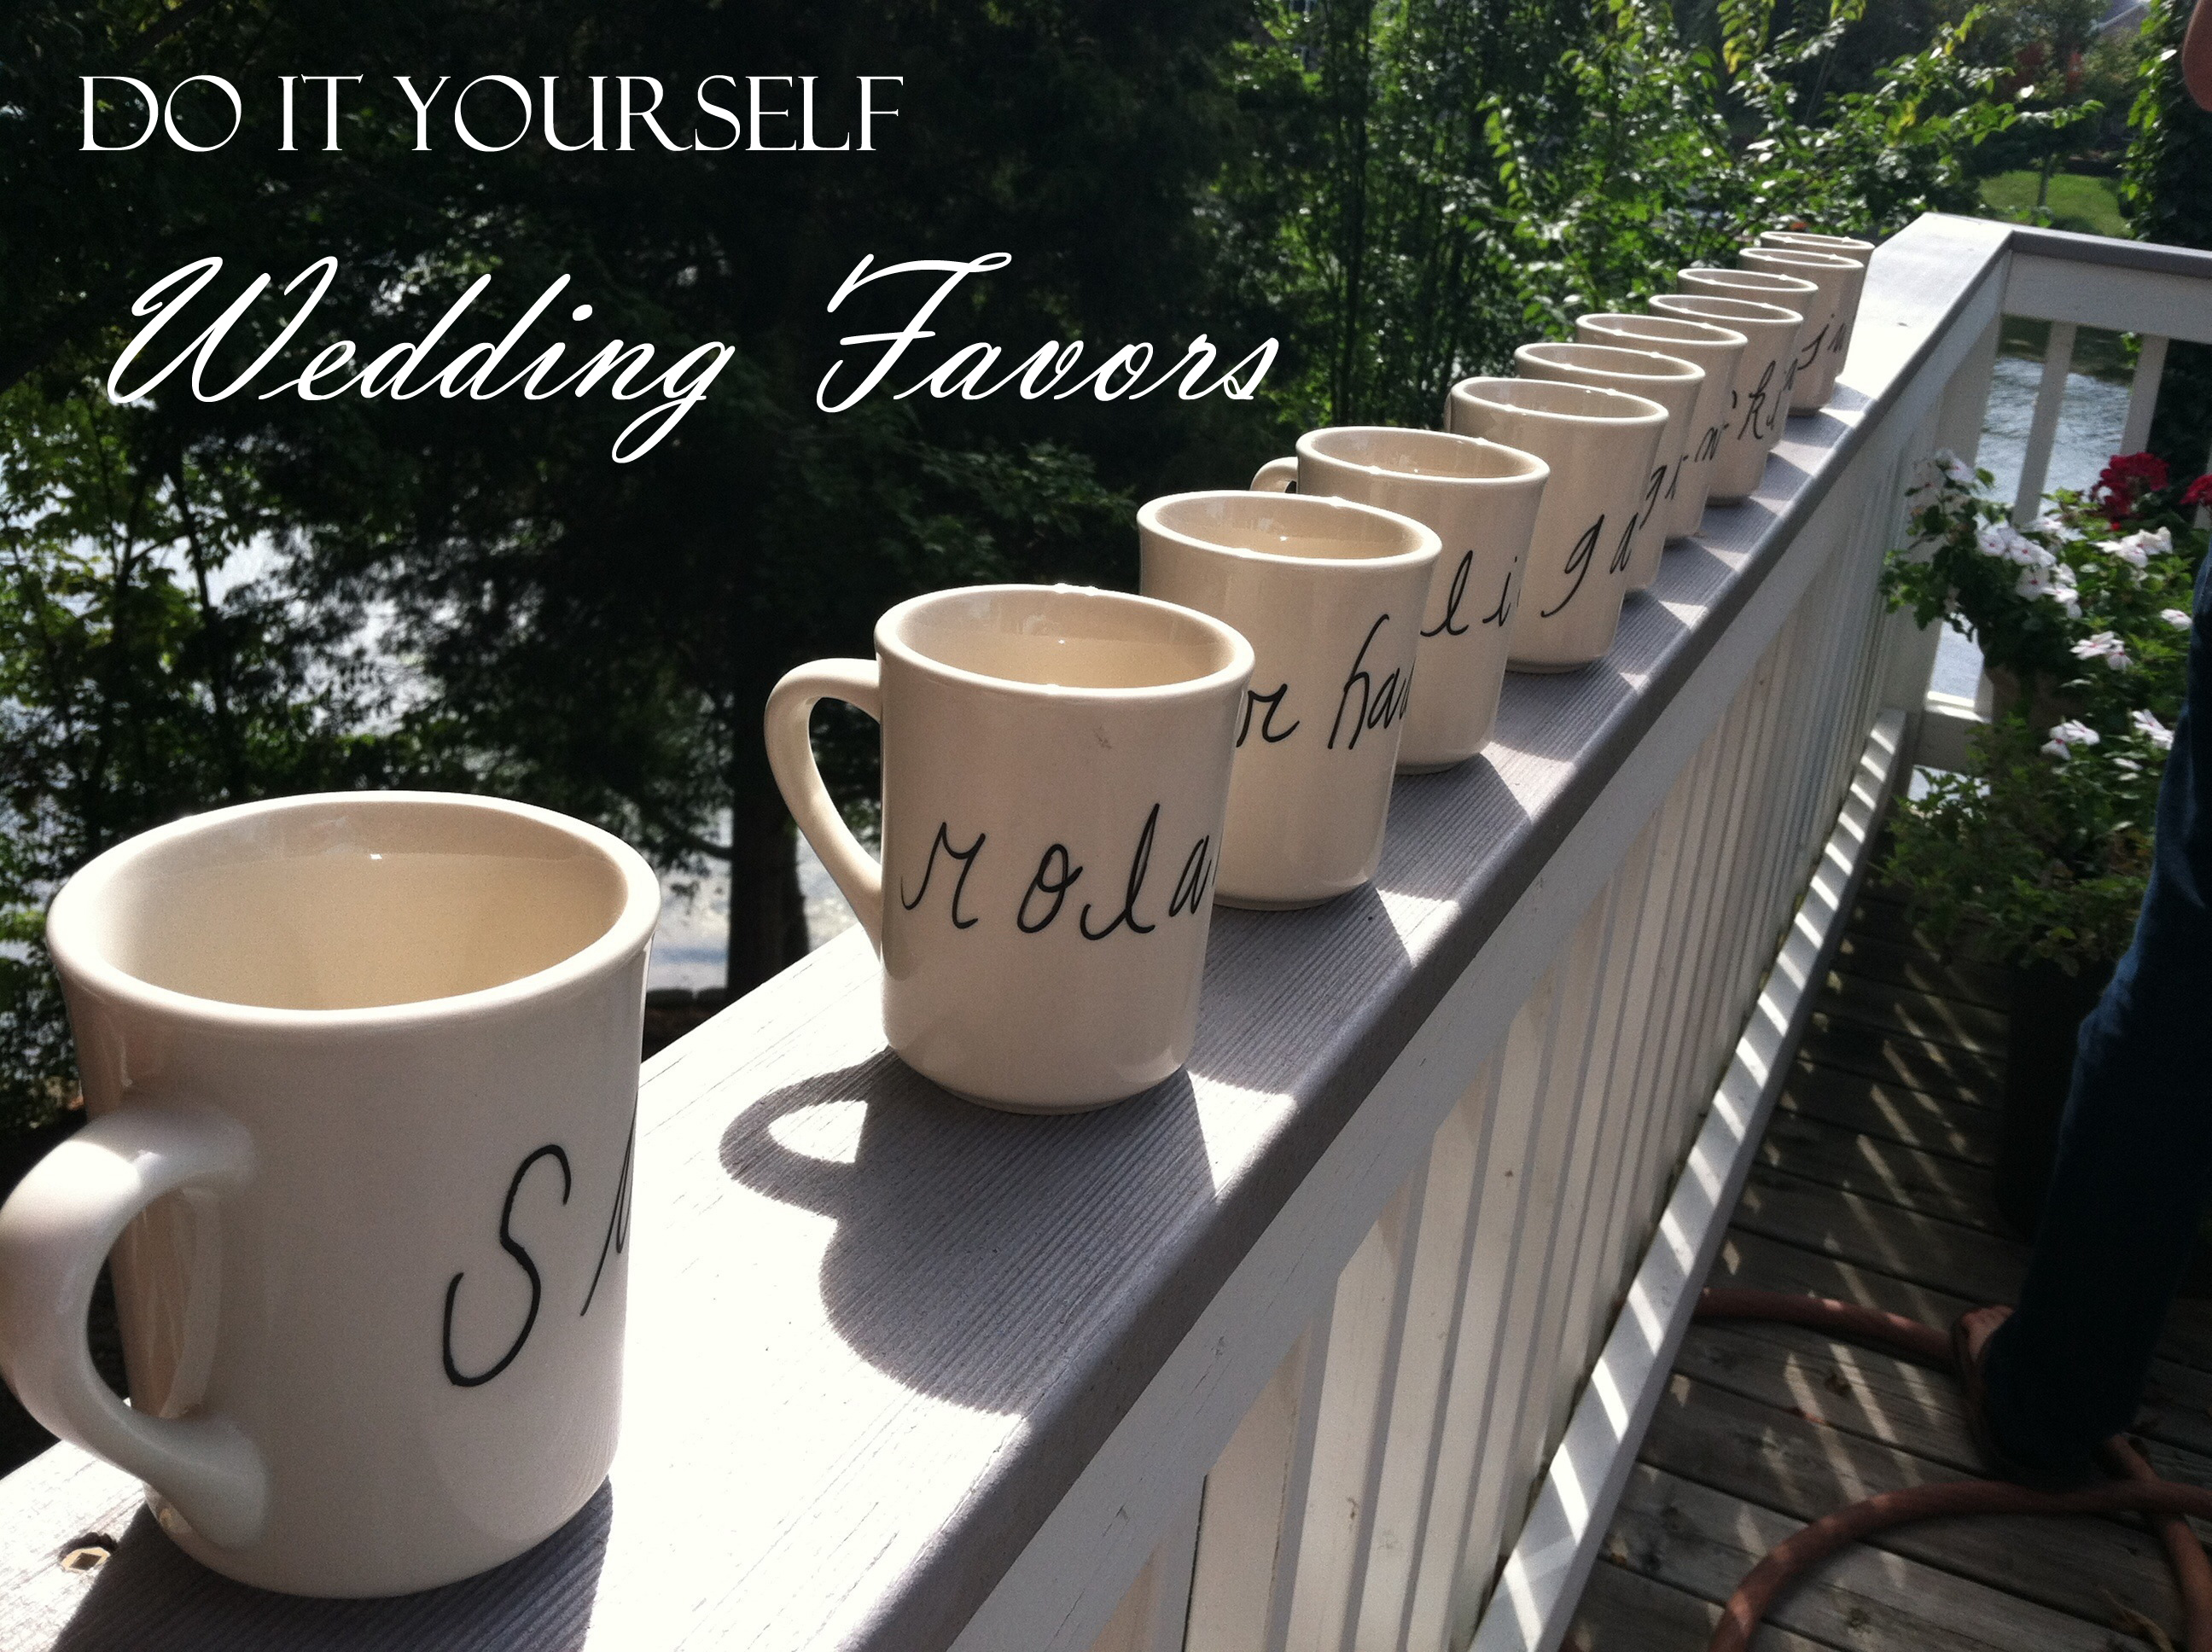 Diy wedding favors sharpie coffee mugs kaylee may coffee mugs sharpie coffee mugs solutioingenieria Choice Image